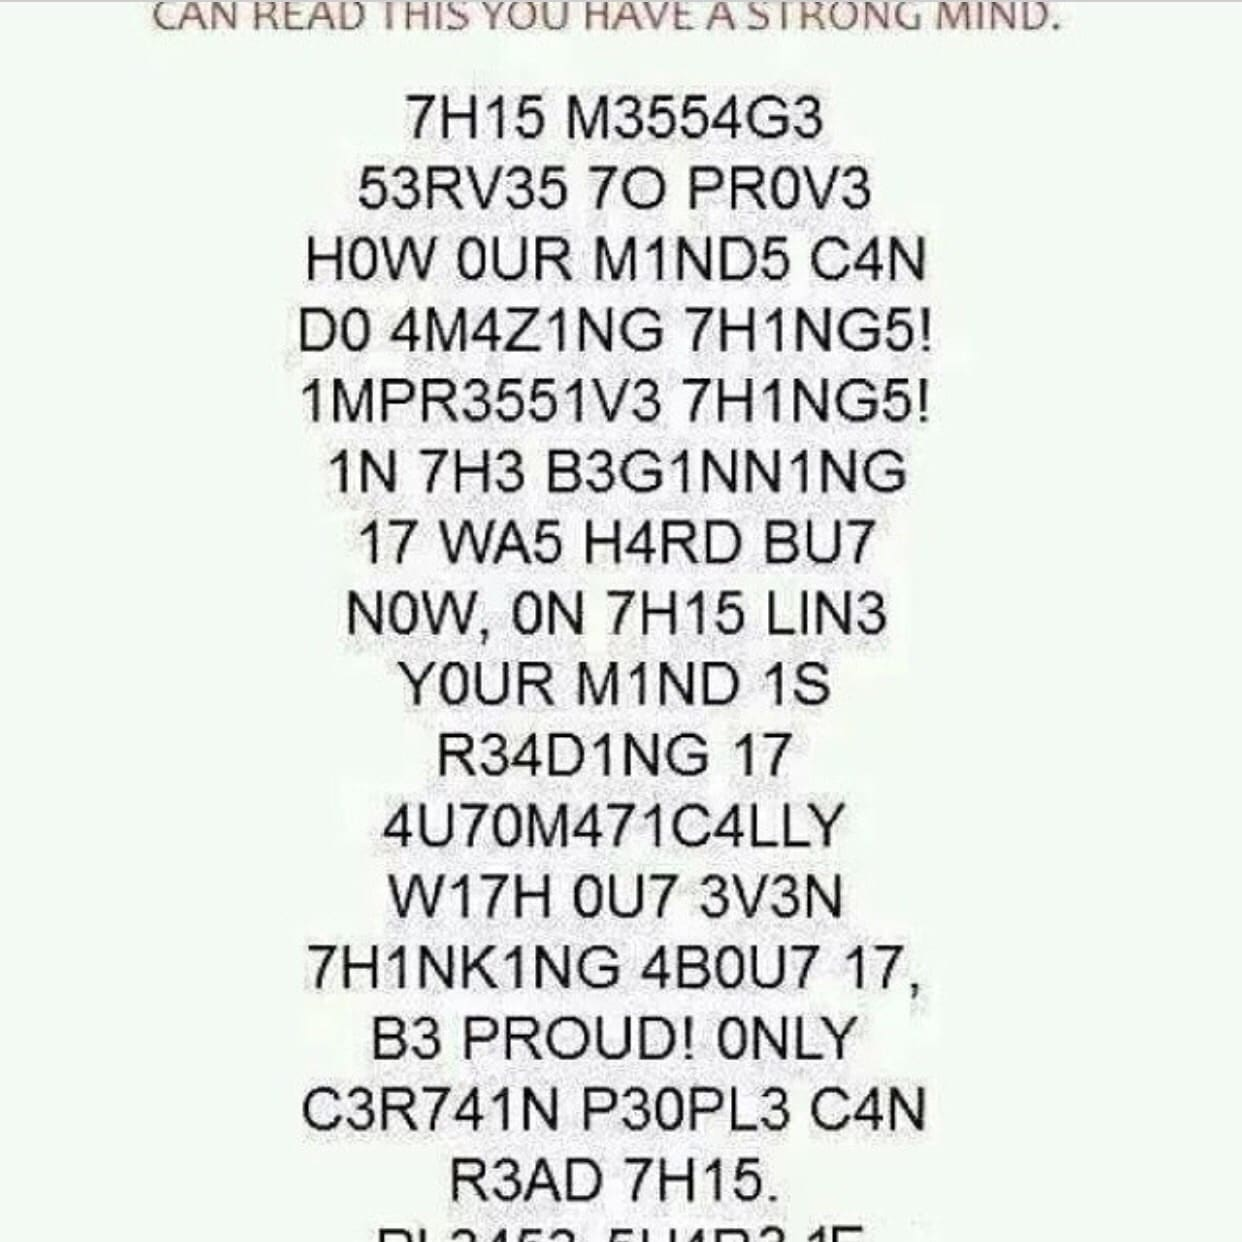 brain can read this without the right spelling subconsciously